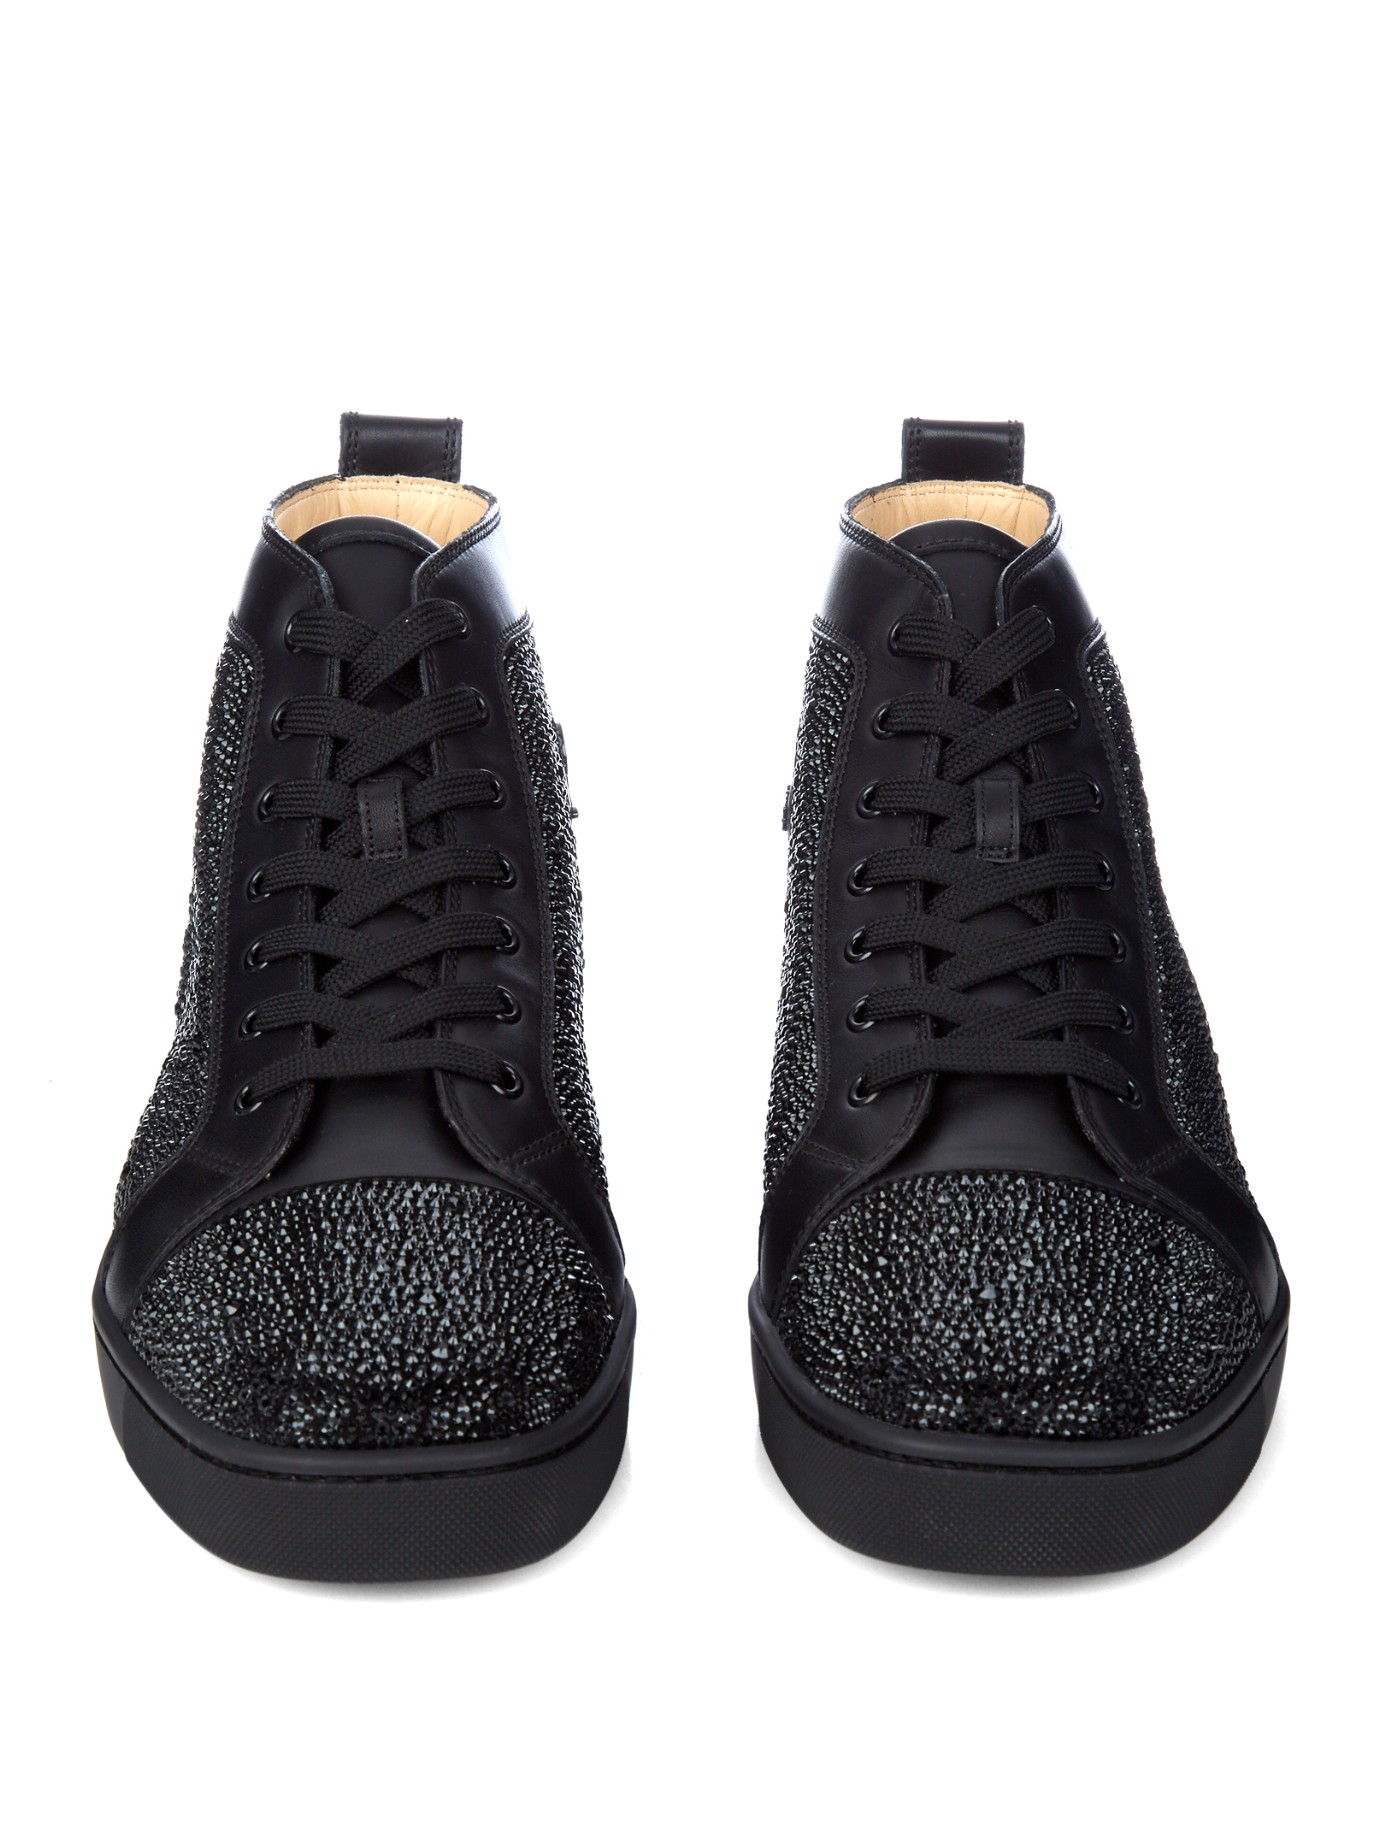 fake mens shoes christian louboutin - christian louboutin black trainers